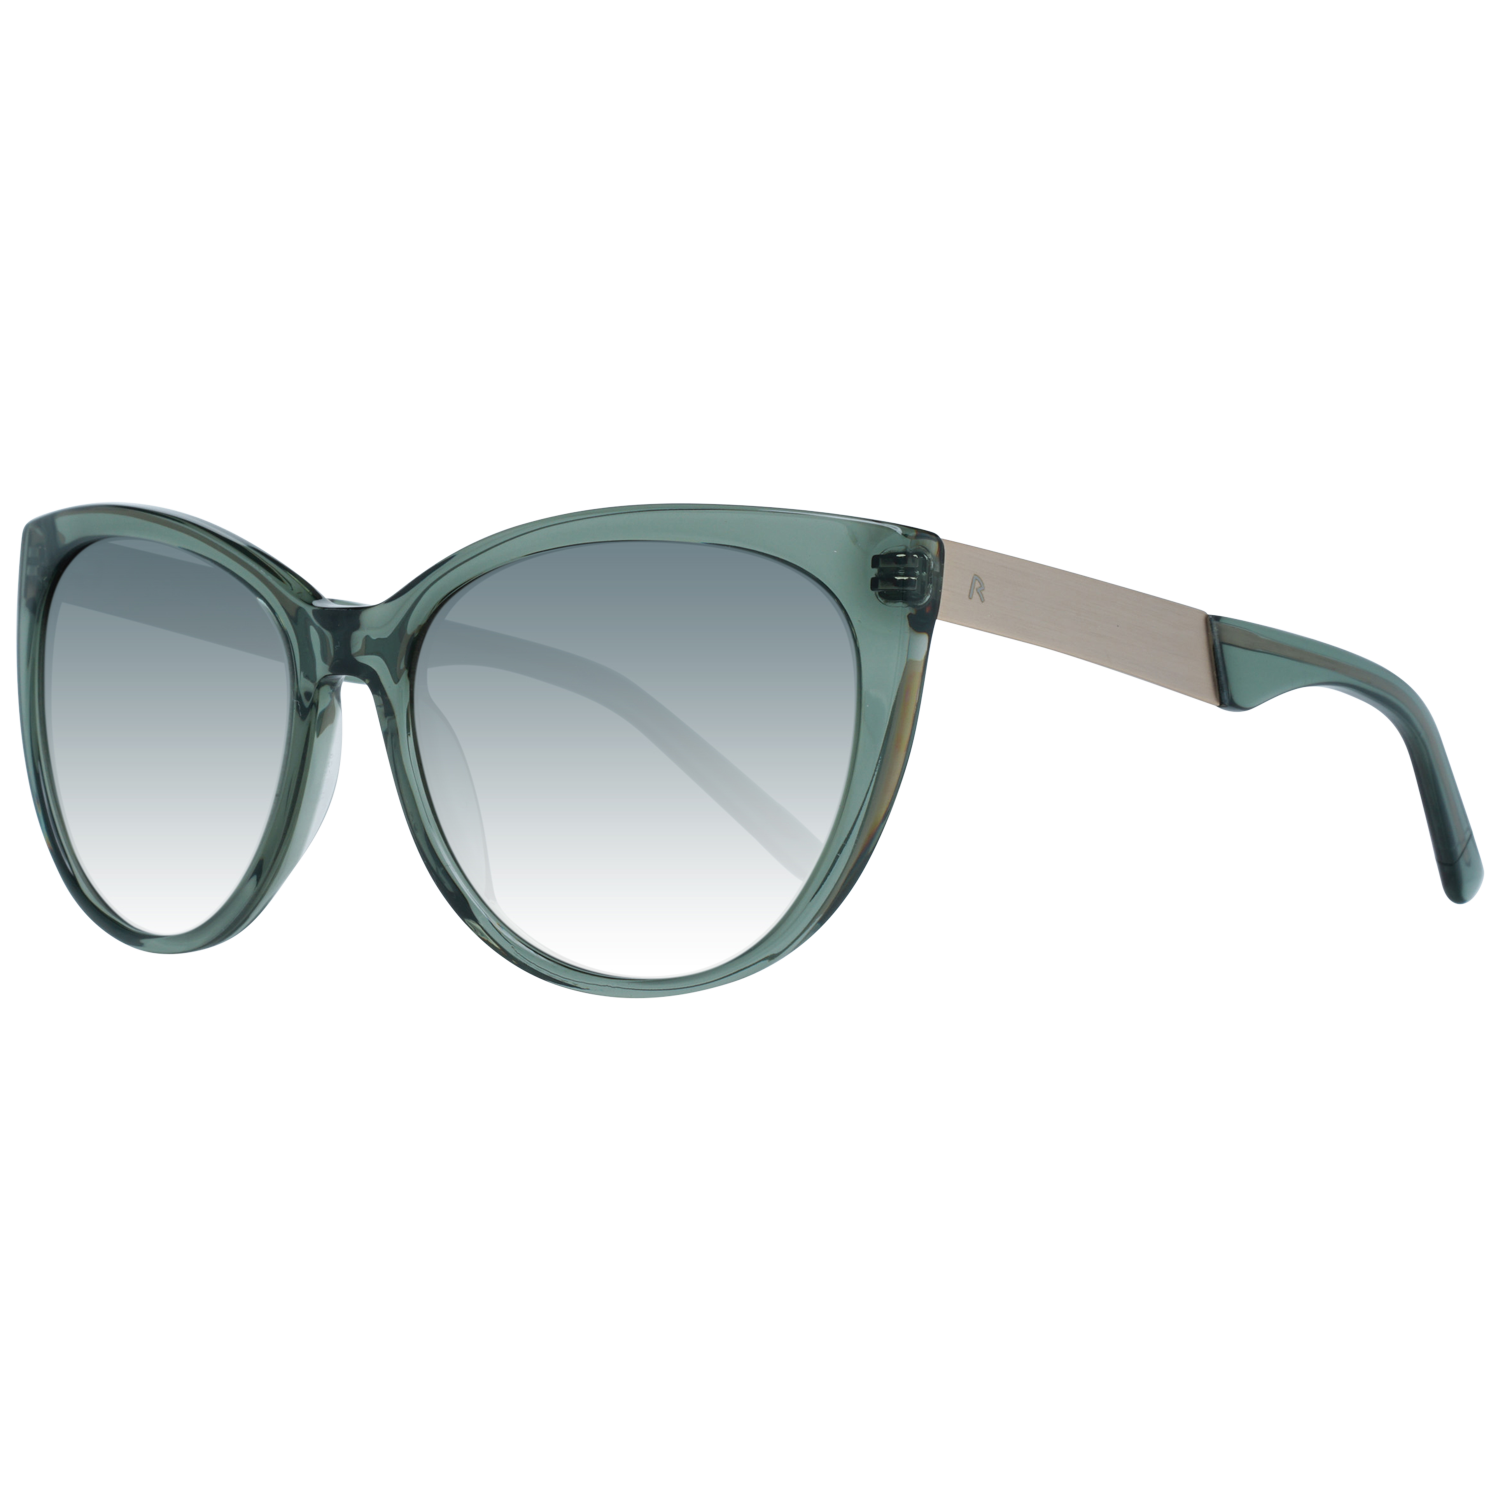 Rodenstock Sunglasses R3300 D 55 Green